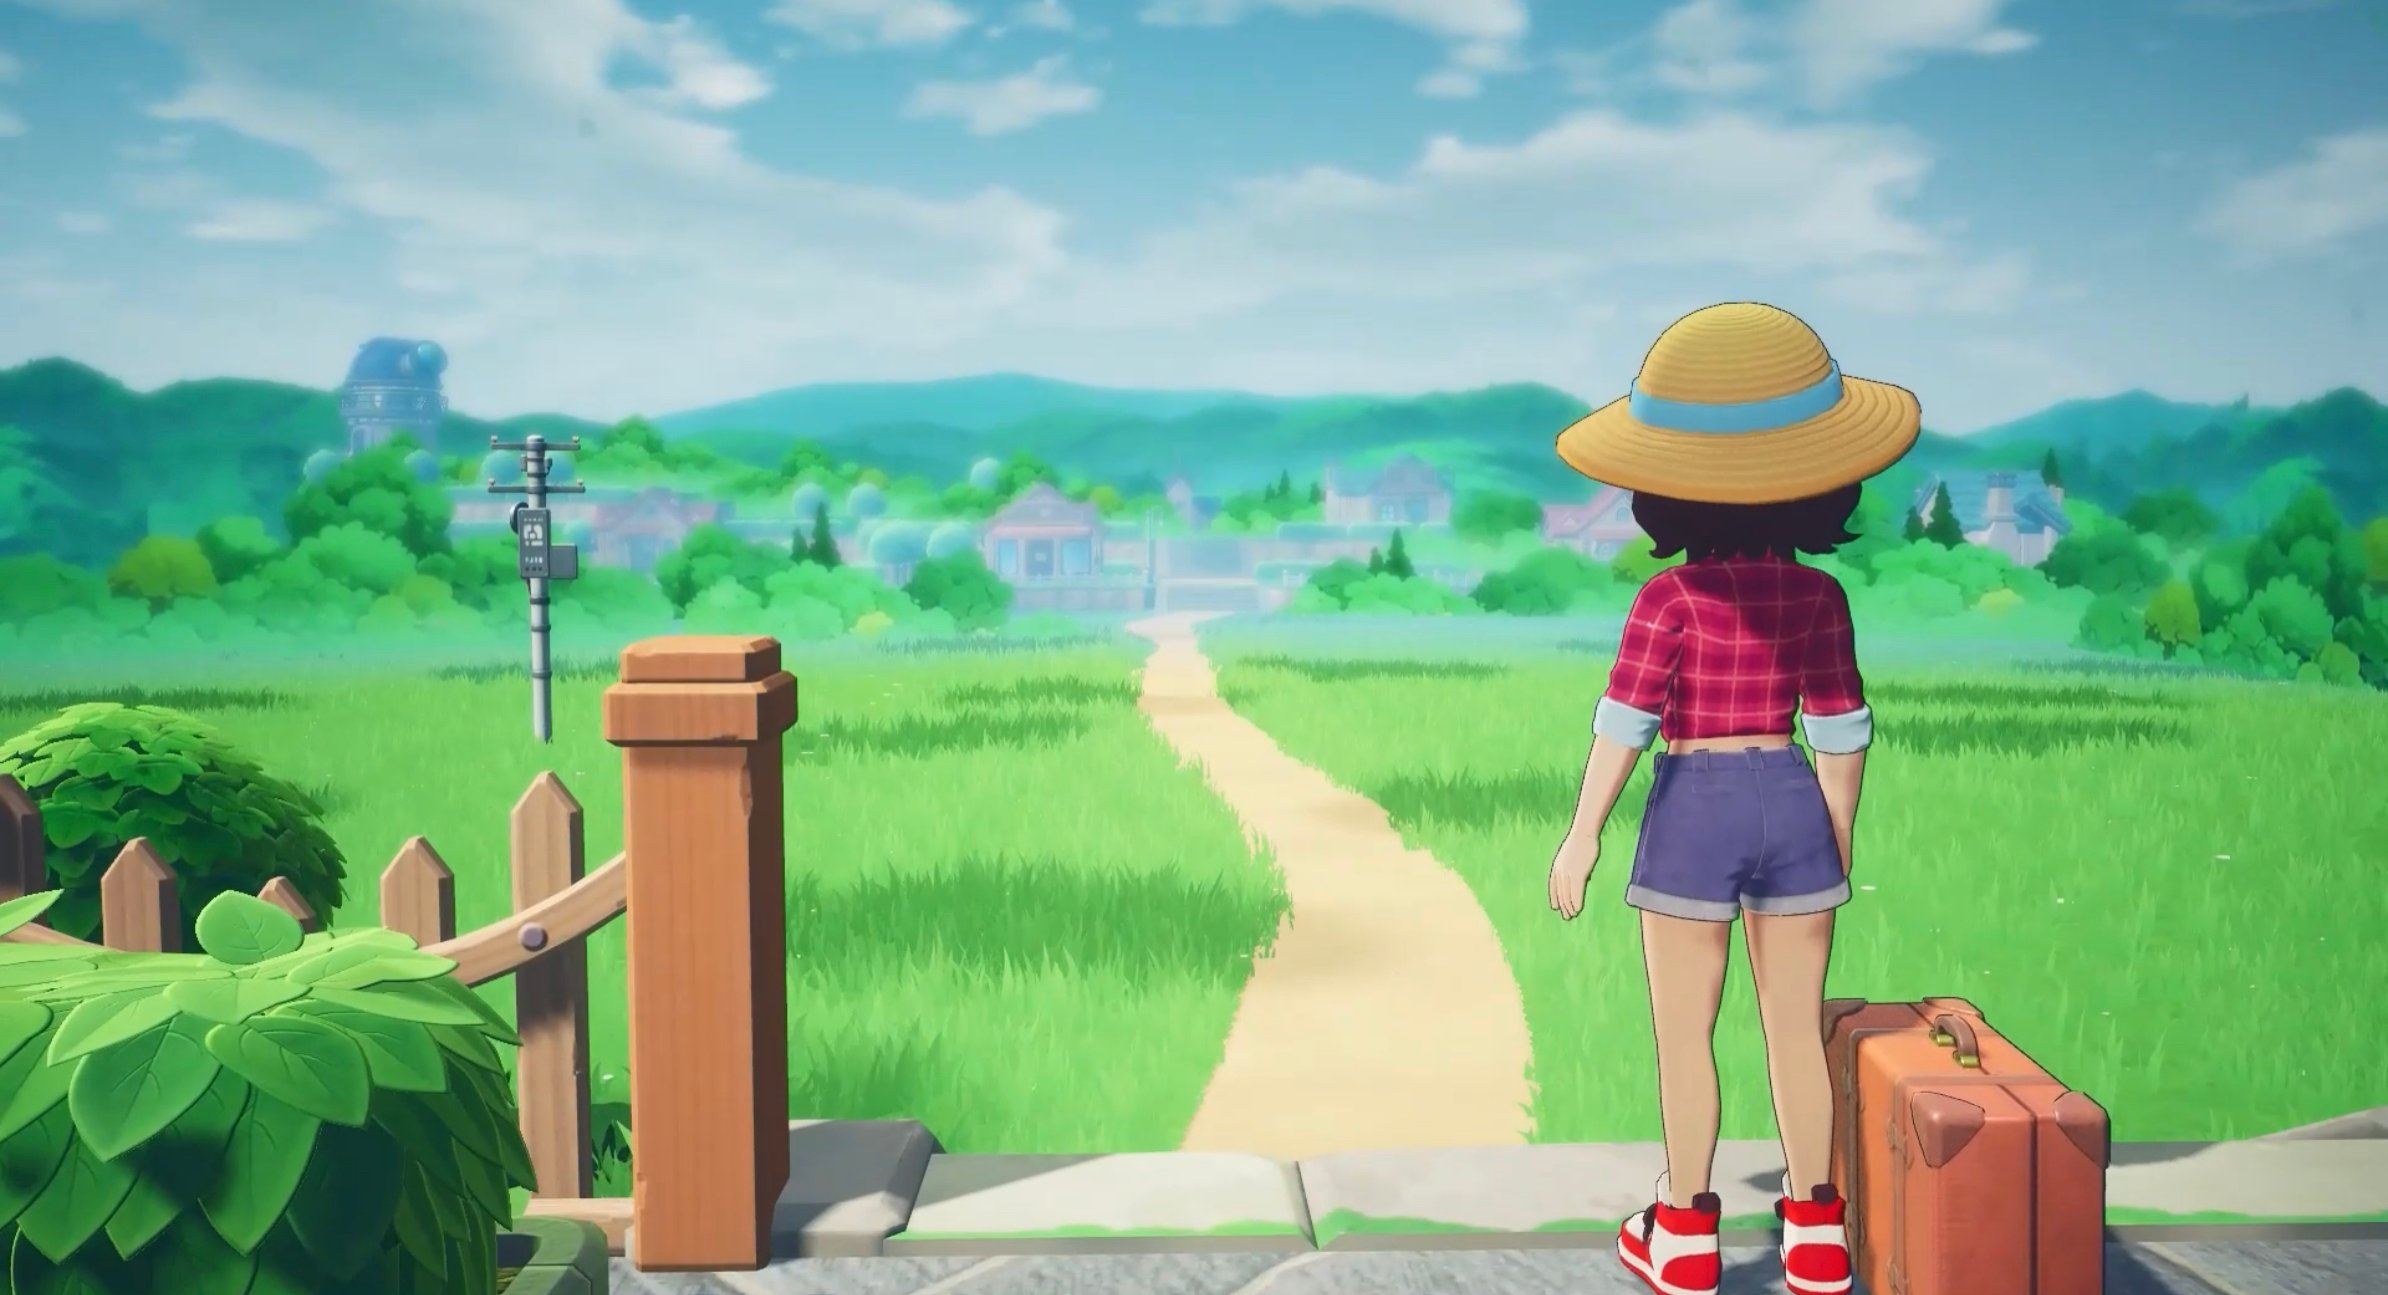 Tencent Announces Story of Seasons Mobile Version with a Short Trailer